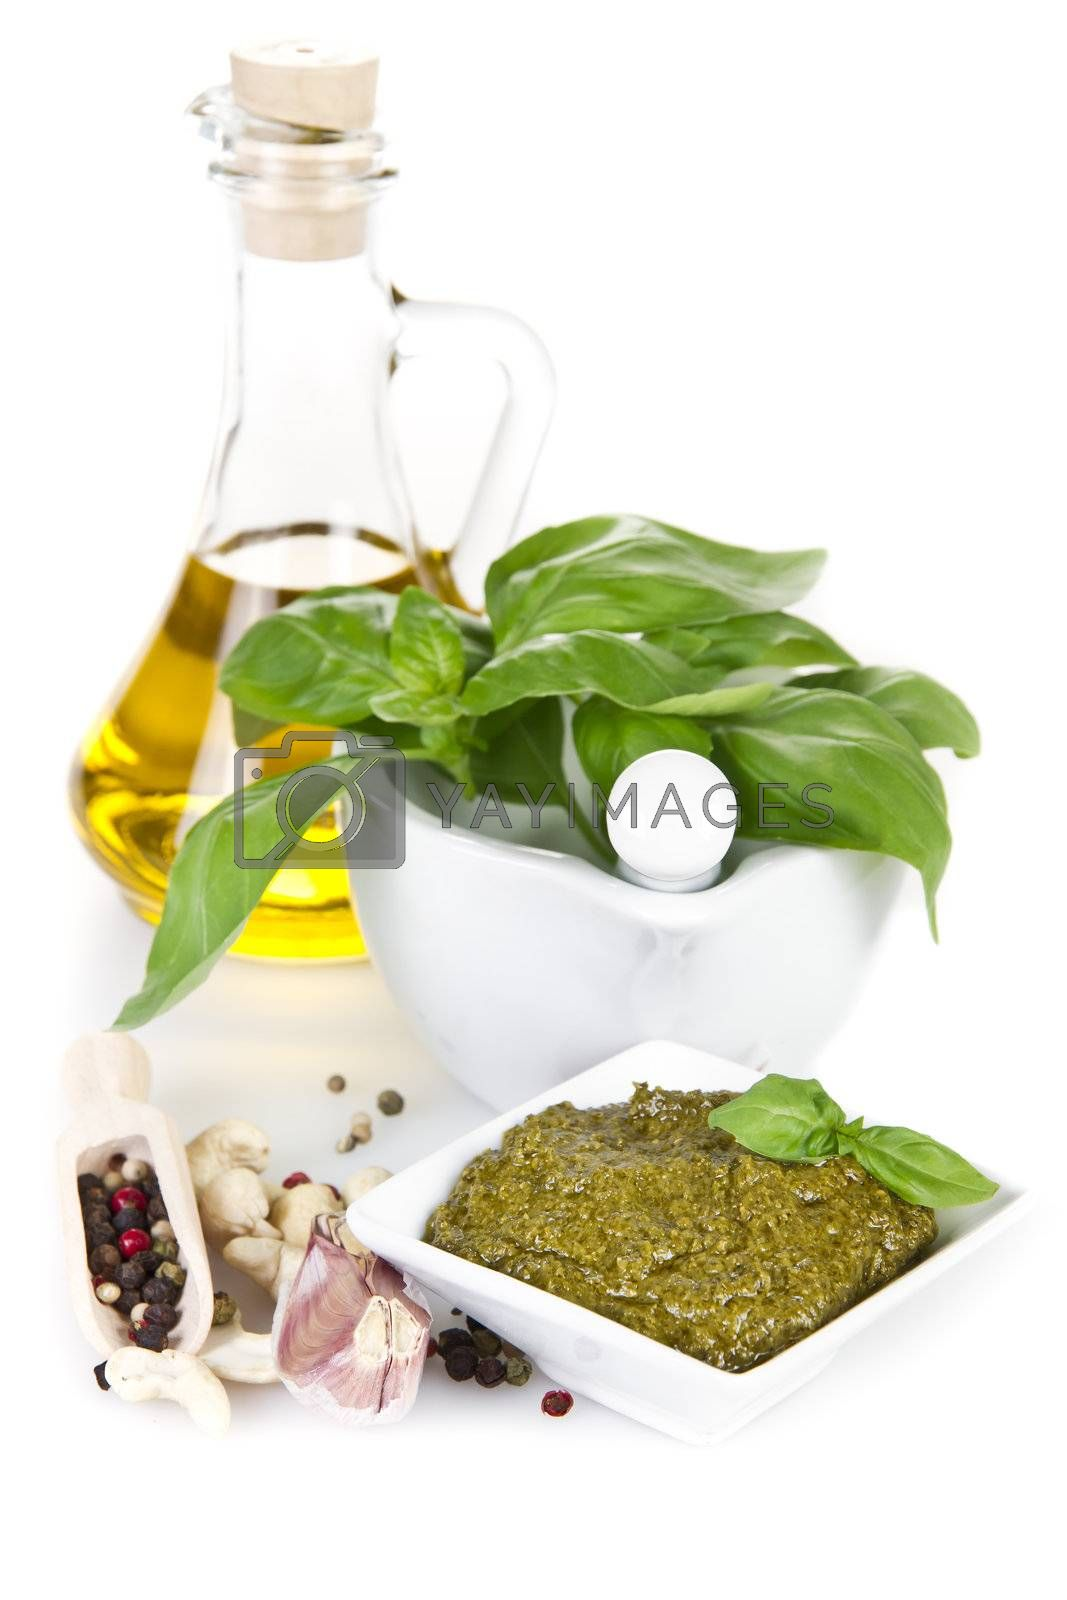 Pesto sauce with ingredients over white backround